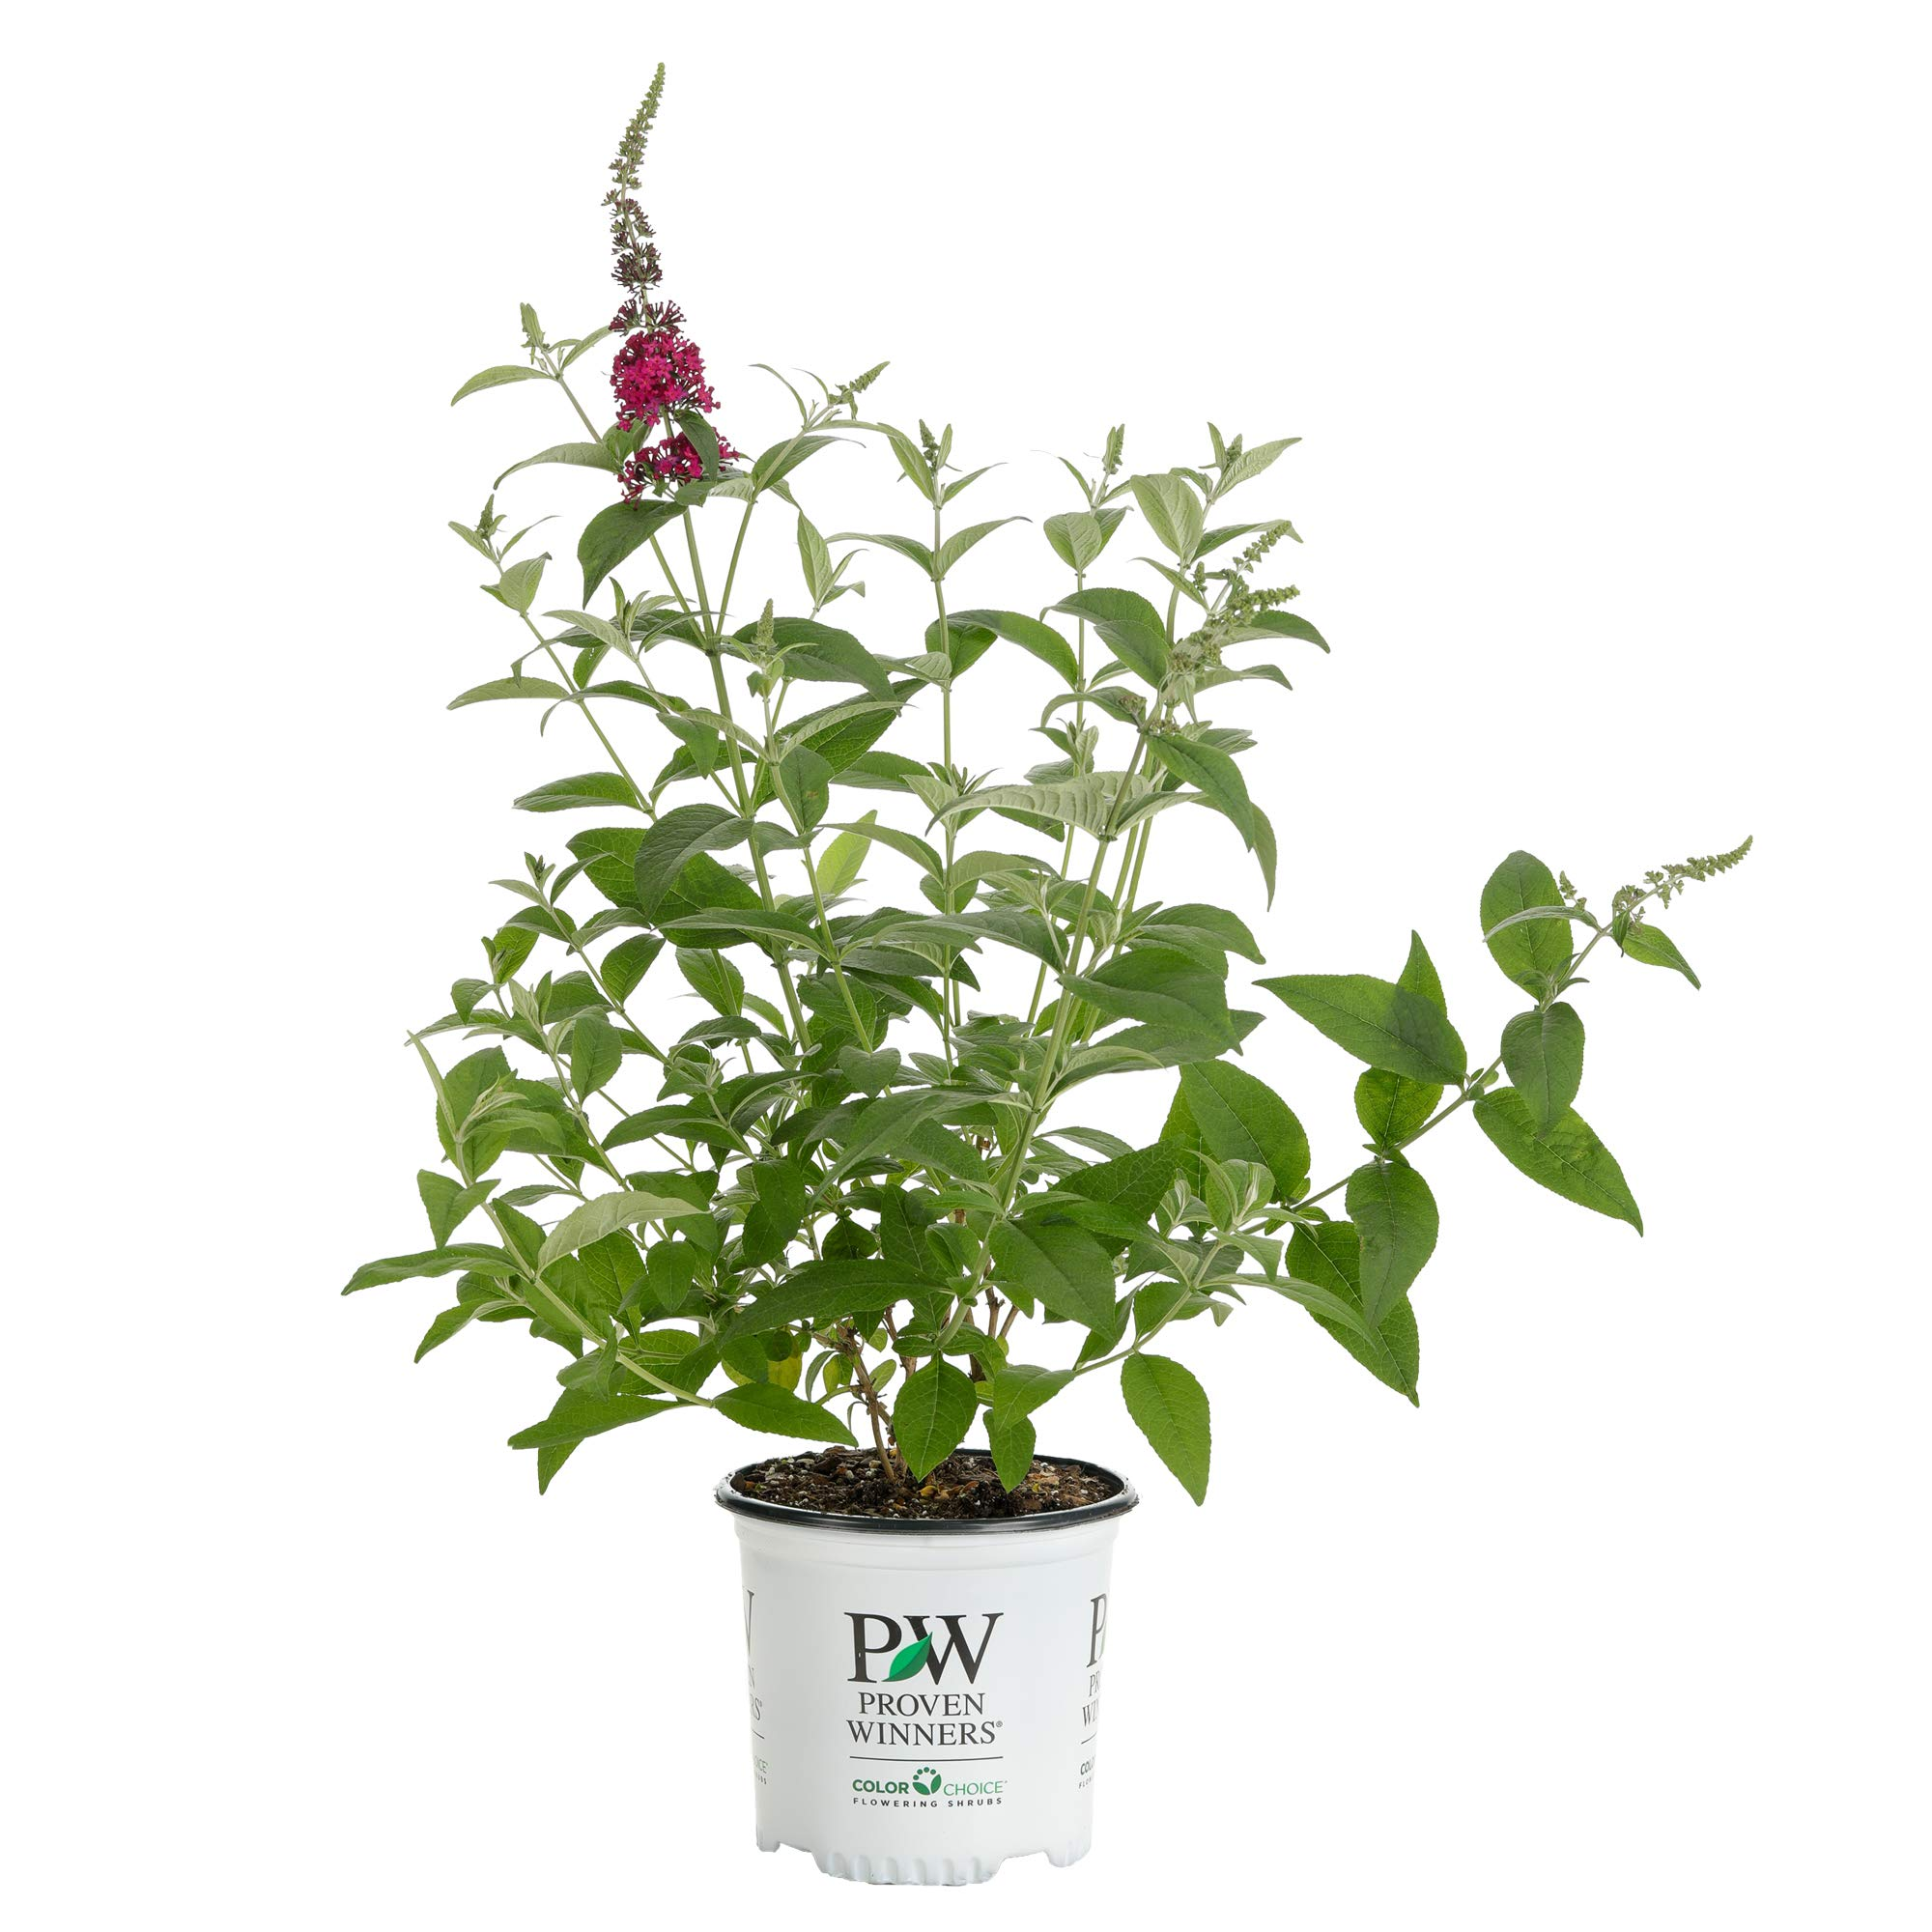 1 Gal. Miss Molly Butterfly Bush (Buddleia) Live Shrub, Deep Pink Flowers by Proven Winners